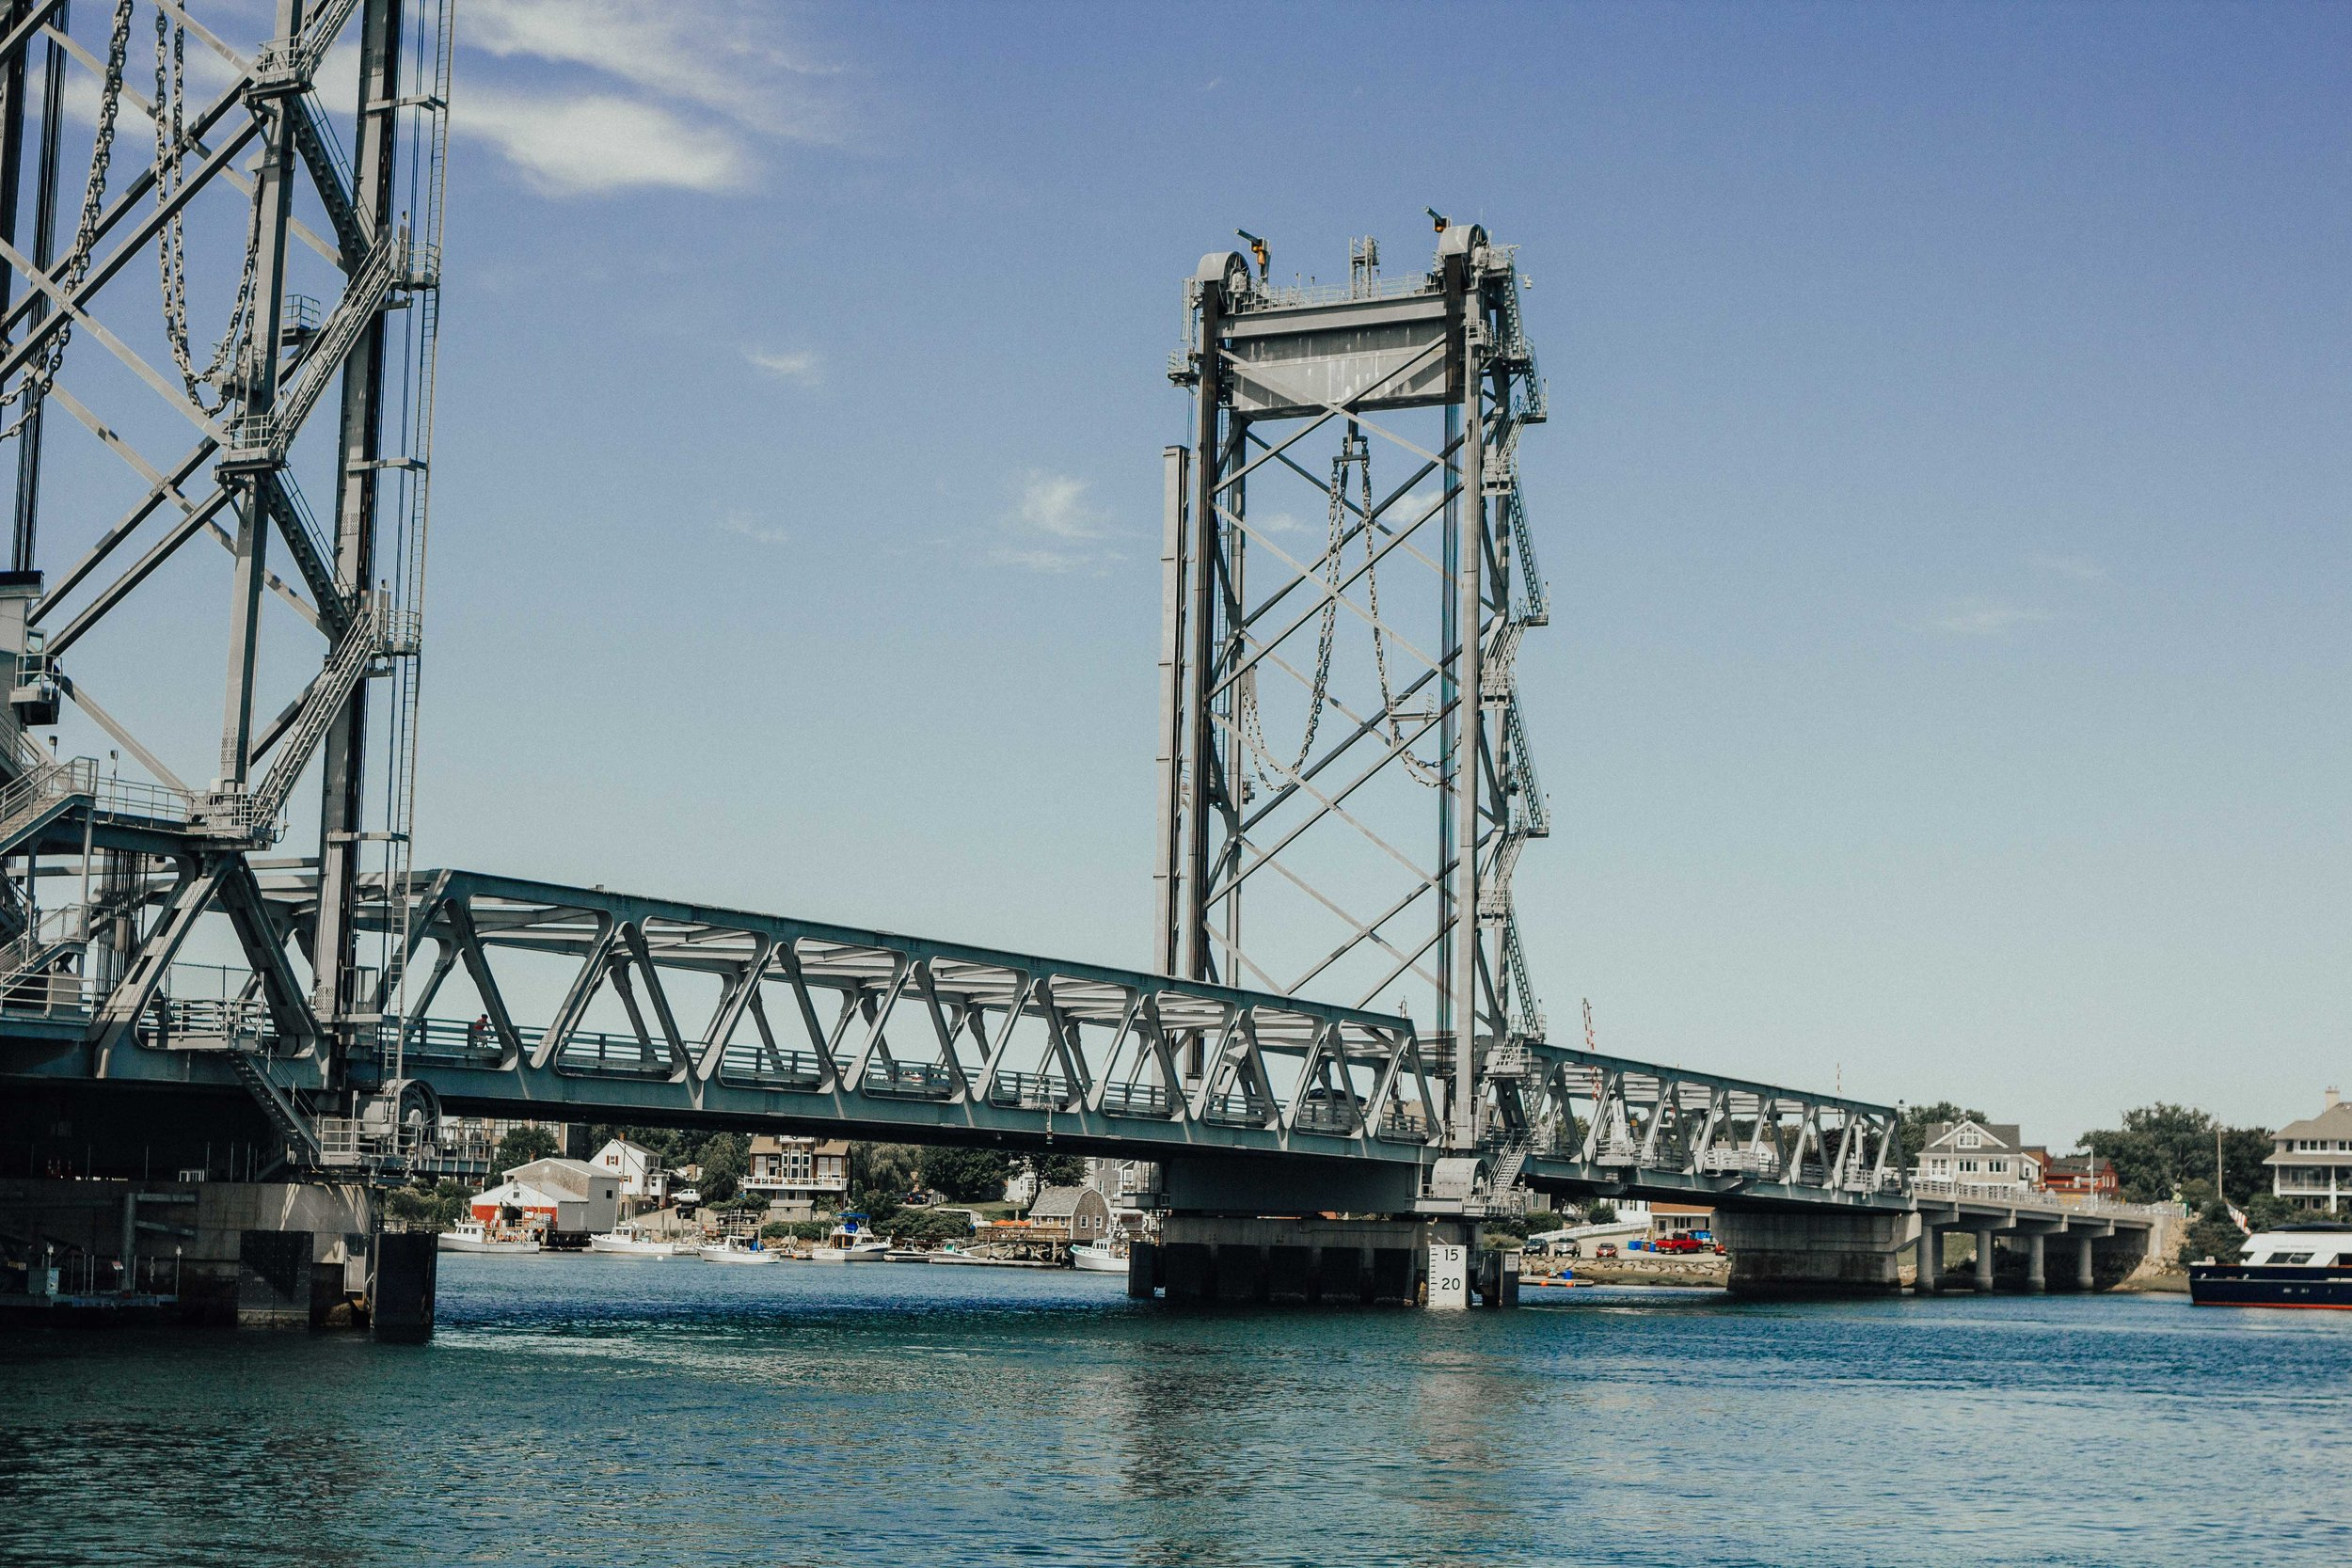 THE BEST INSTAGRAMSPOTS PORTSMOUTH, NH - READ MORE